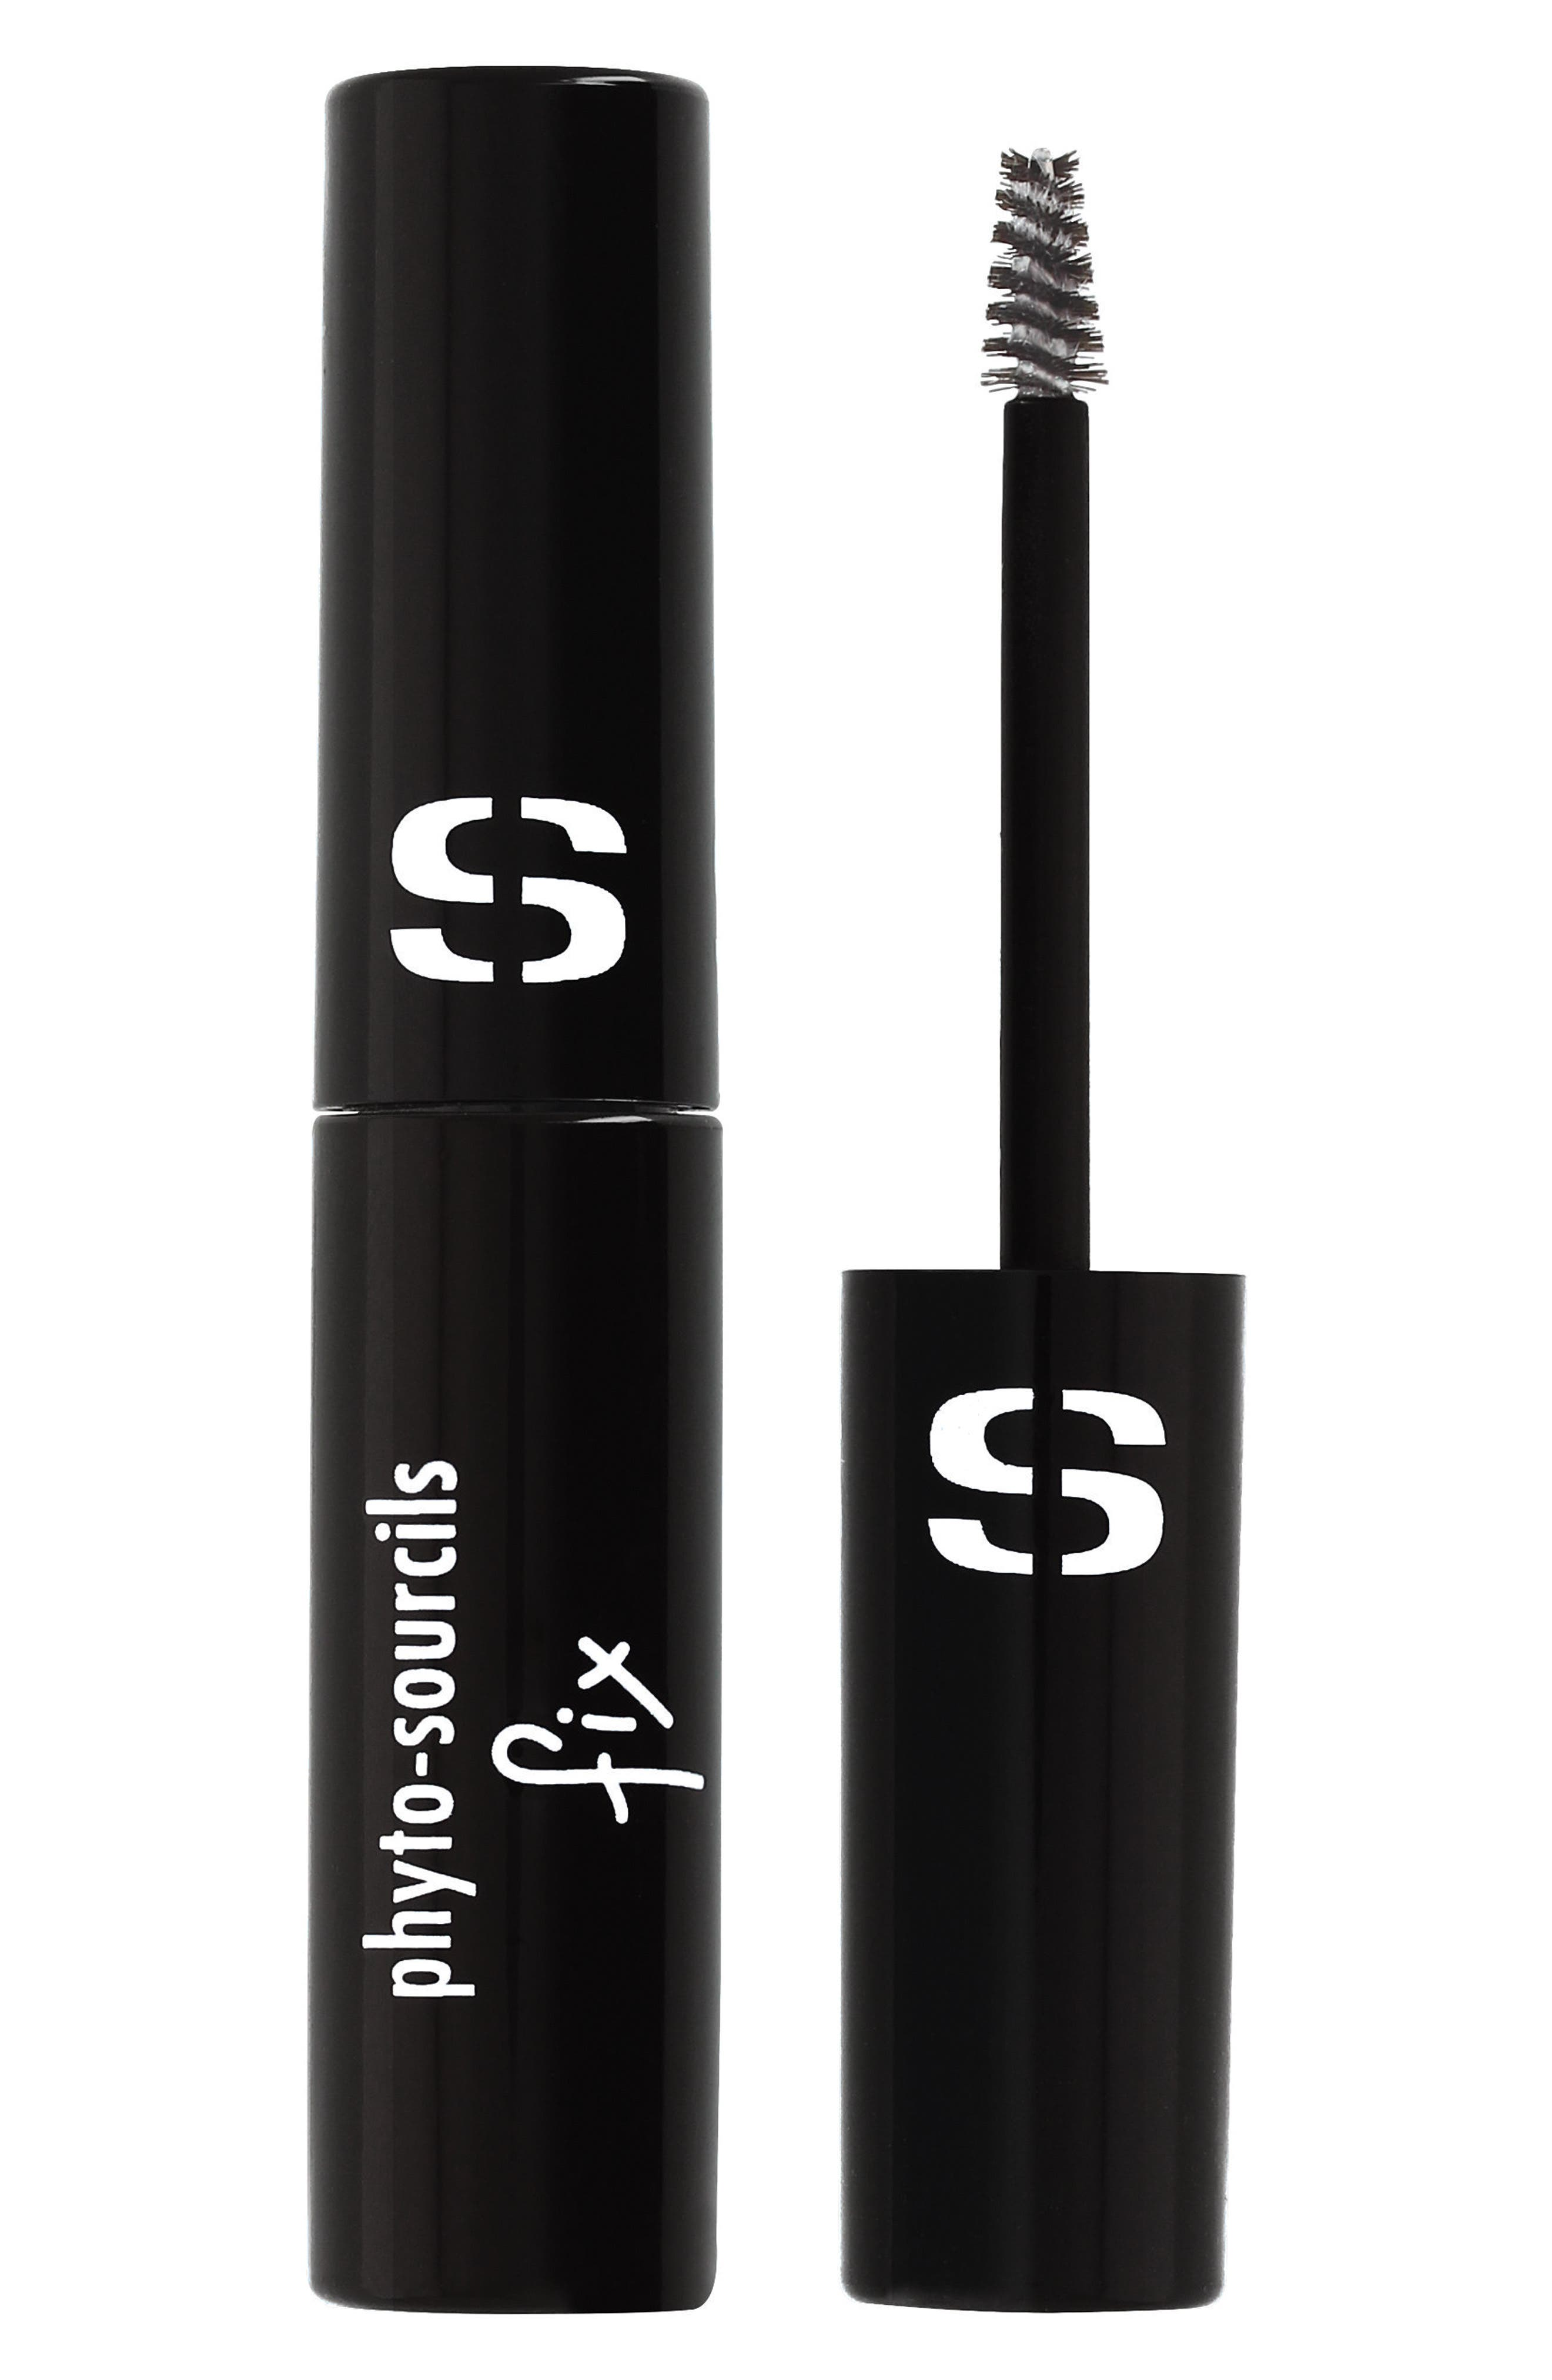 What it is: A thickening and setting gel for eyebrows enriched with nylon fibers to add body to brows for an instant look of fullness. What it does: It keeps your eyebrows in place all day without stiffness while taming. Its micro-sculpting brush enables precise application for a precise shape with a very natural result. One single stroke provides a slightly highlighted effect, while several strokes provide an intense yet still natural shape and